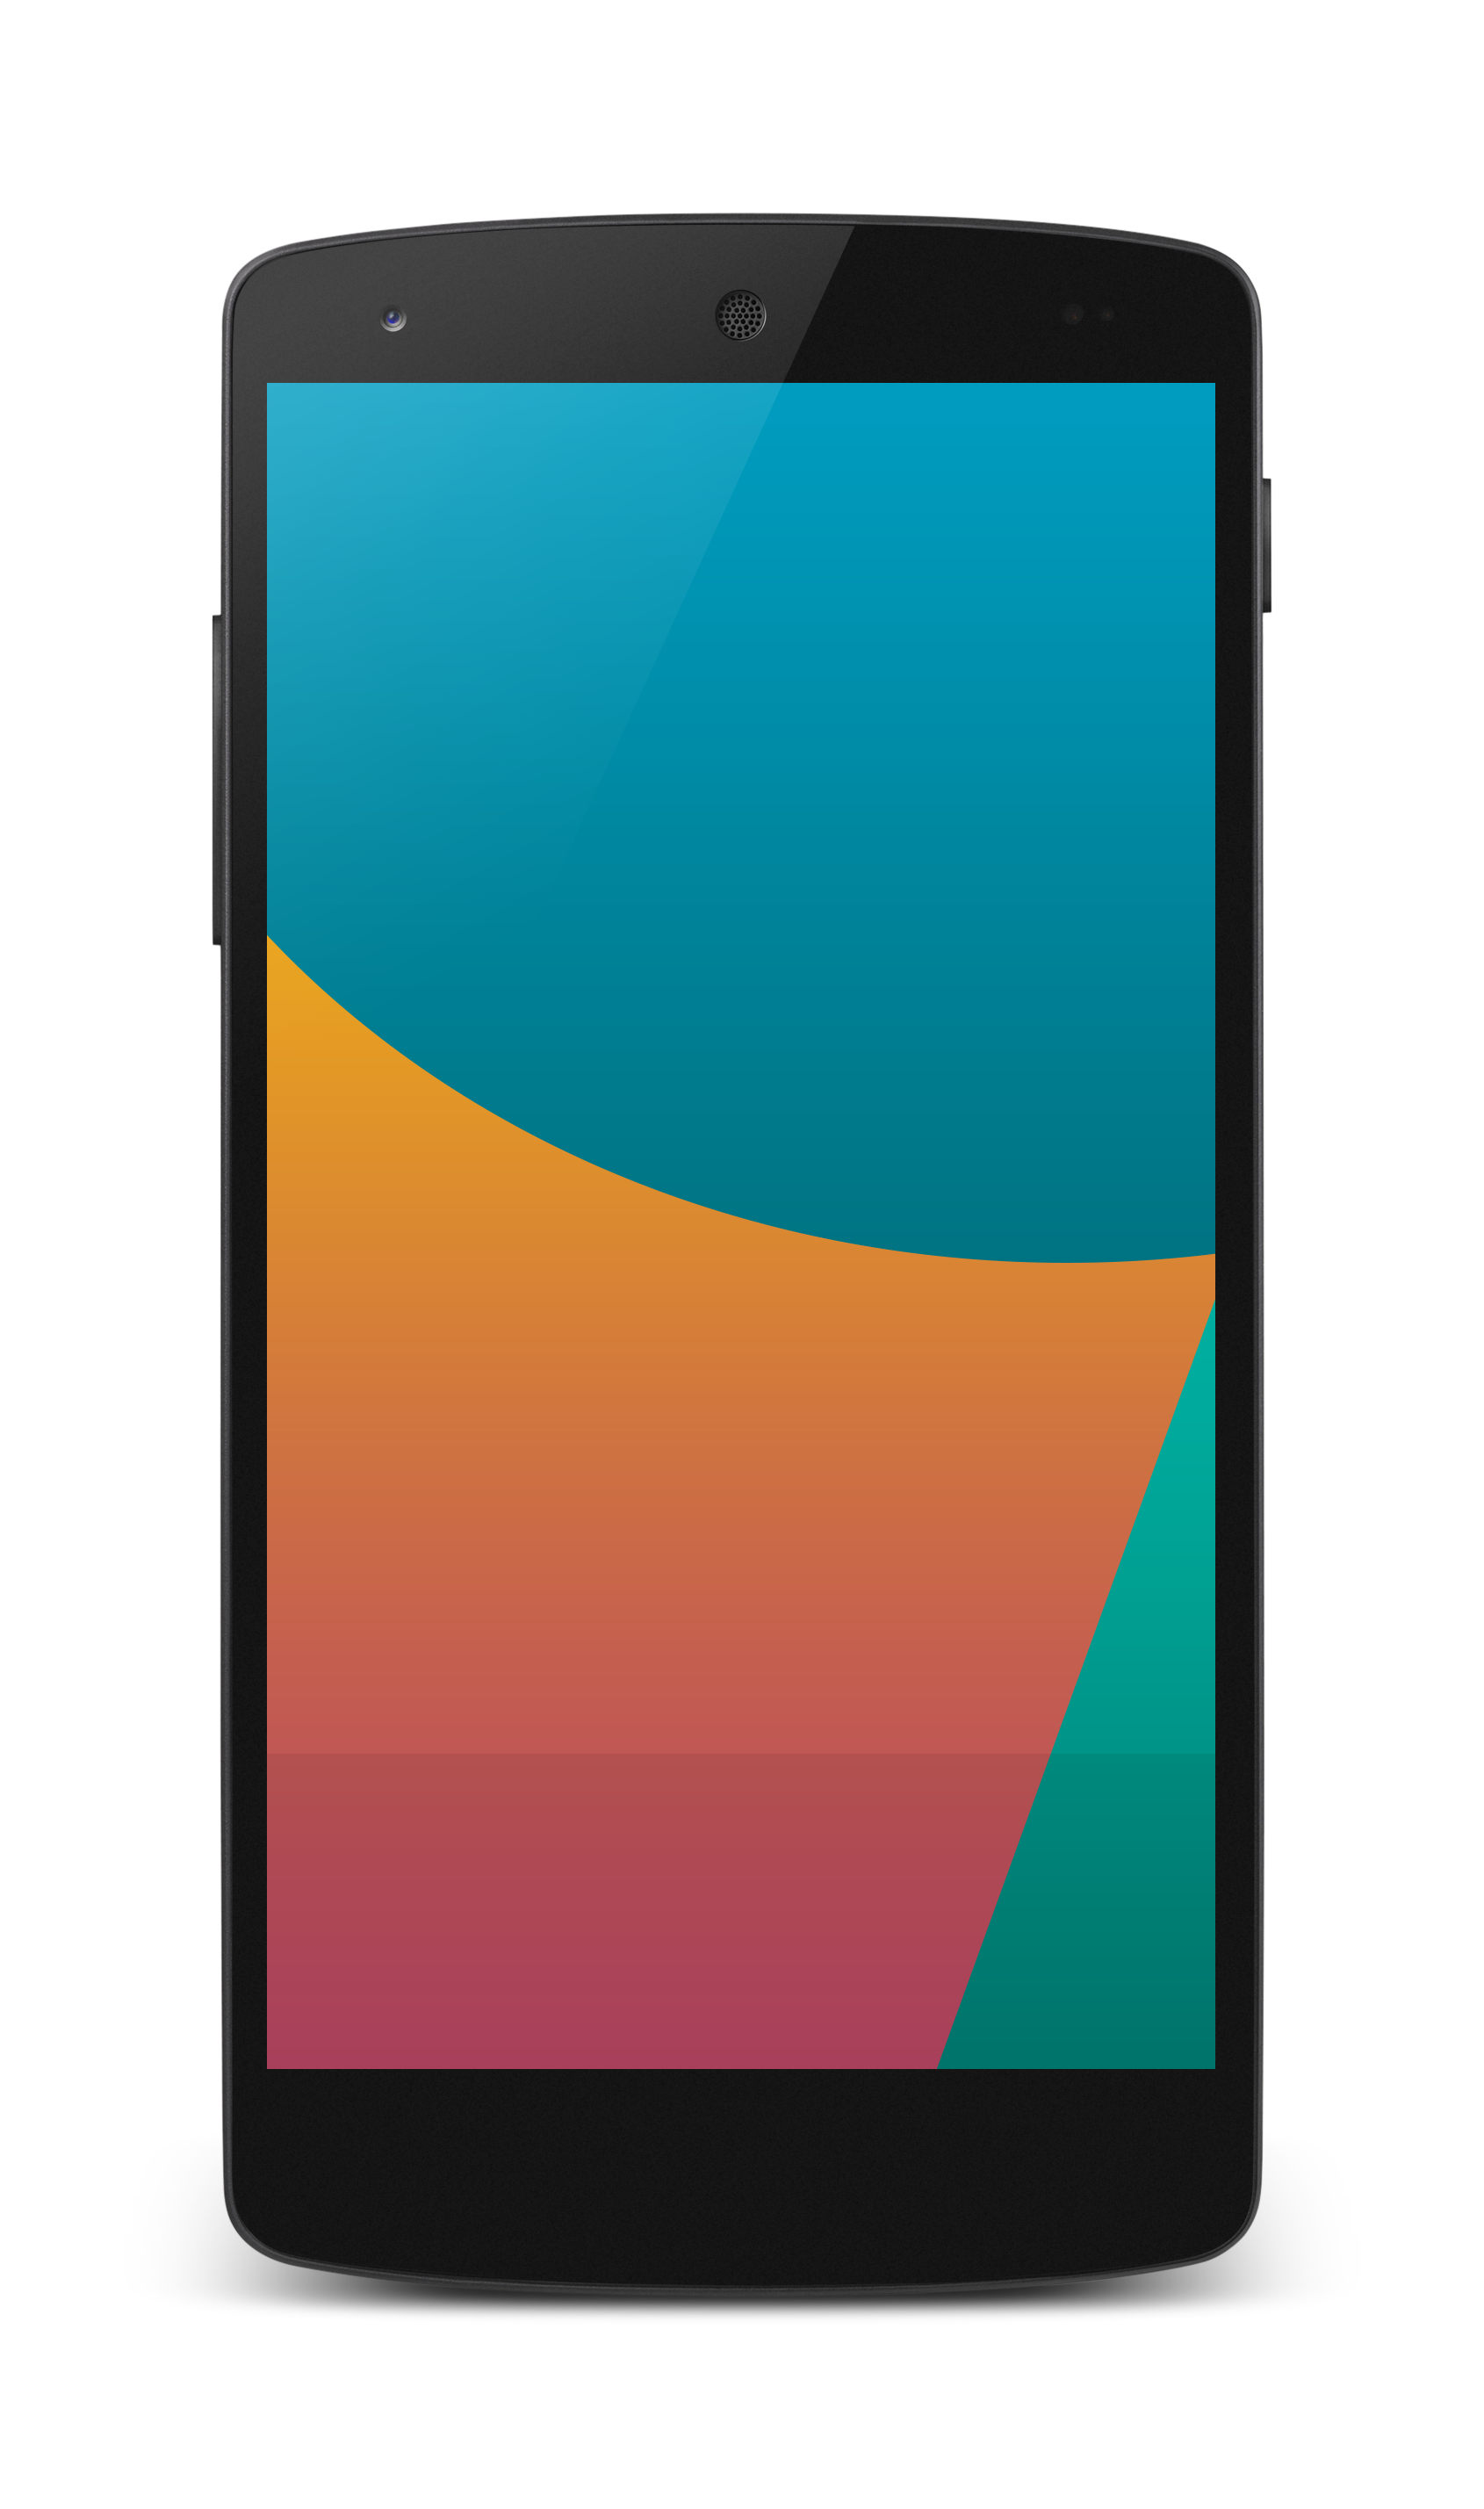 File:Nexus 5 Front View.png.